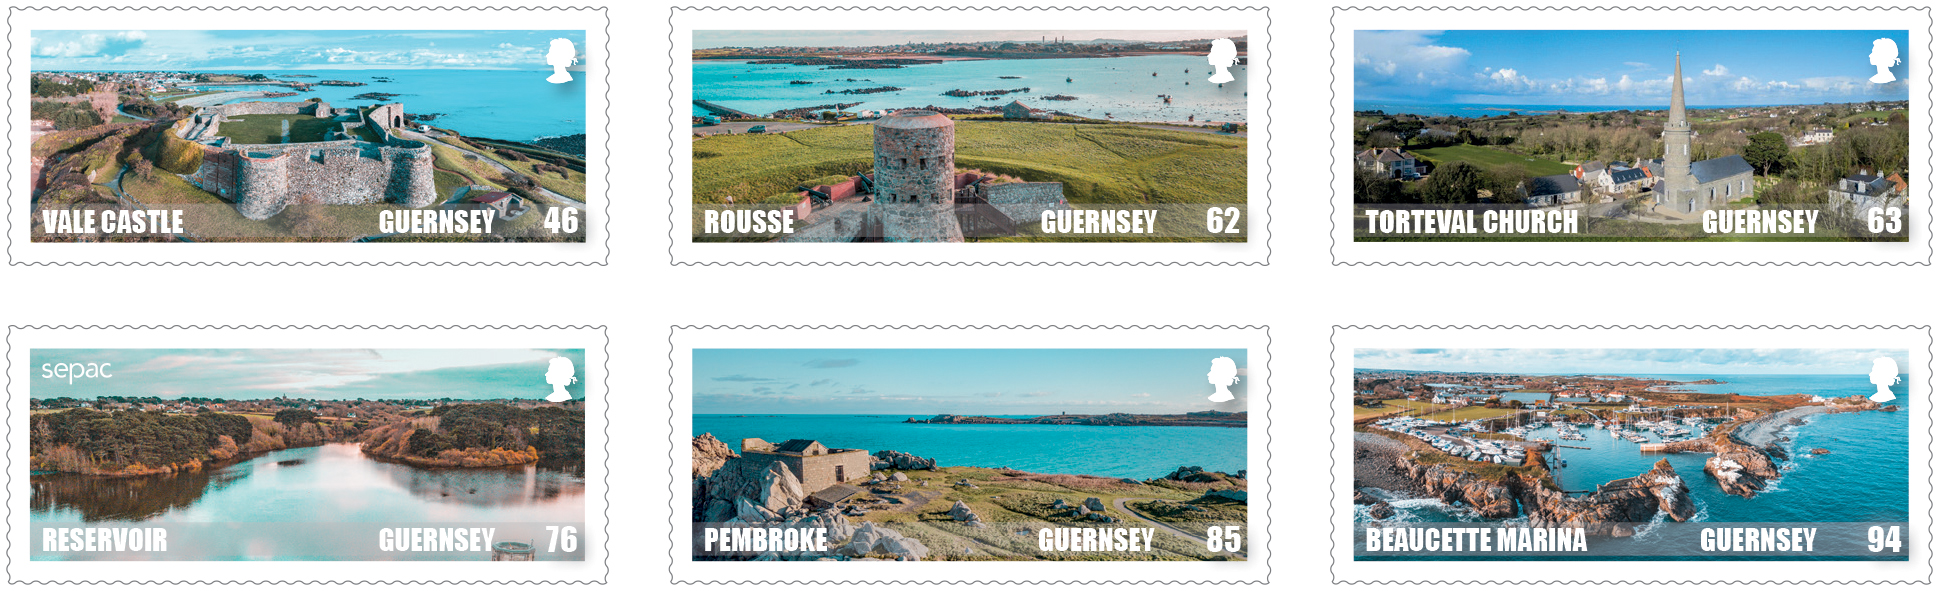 Guernsey's spectacular scenery celebrated on stamps